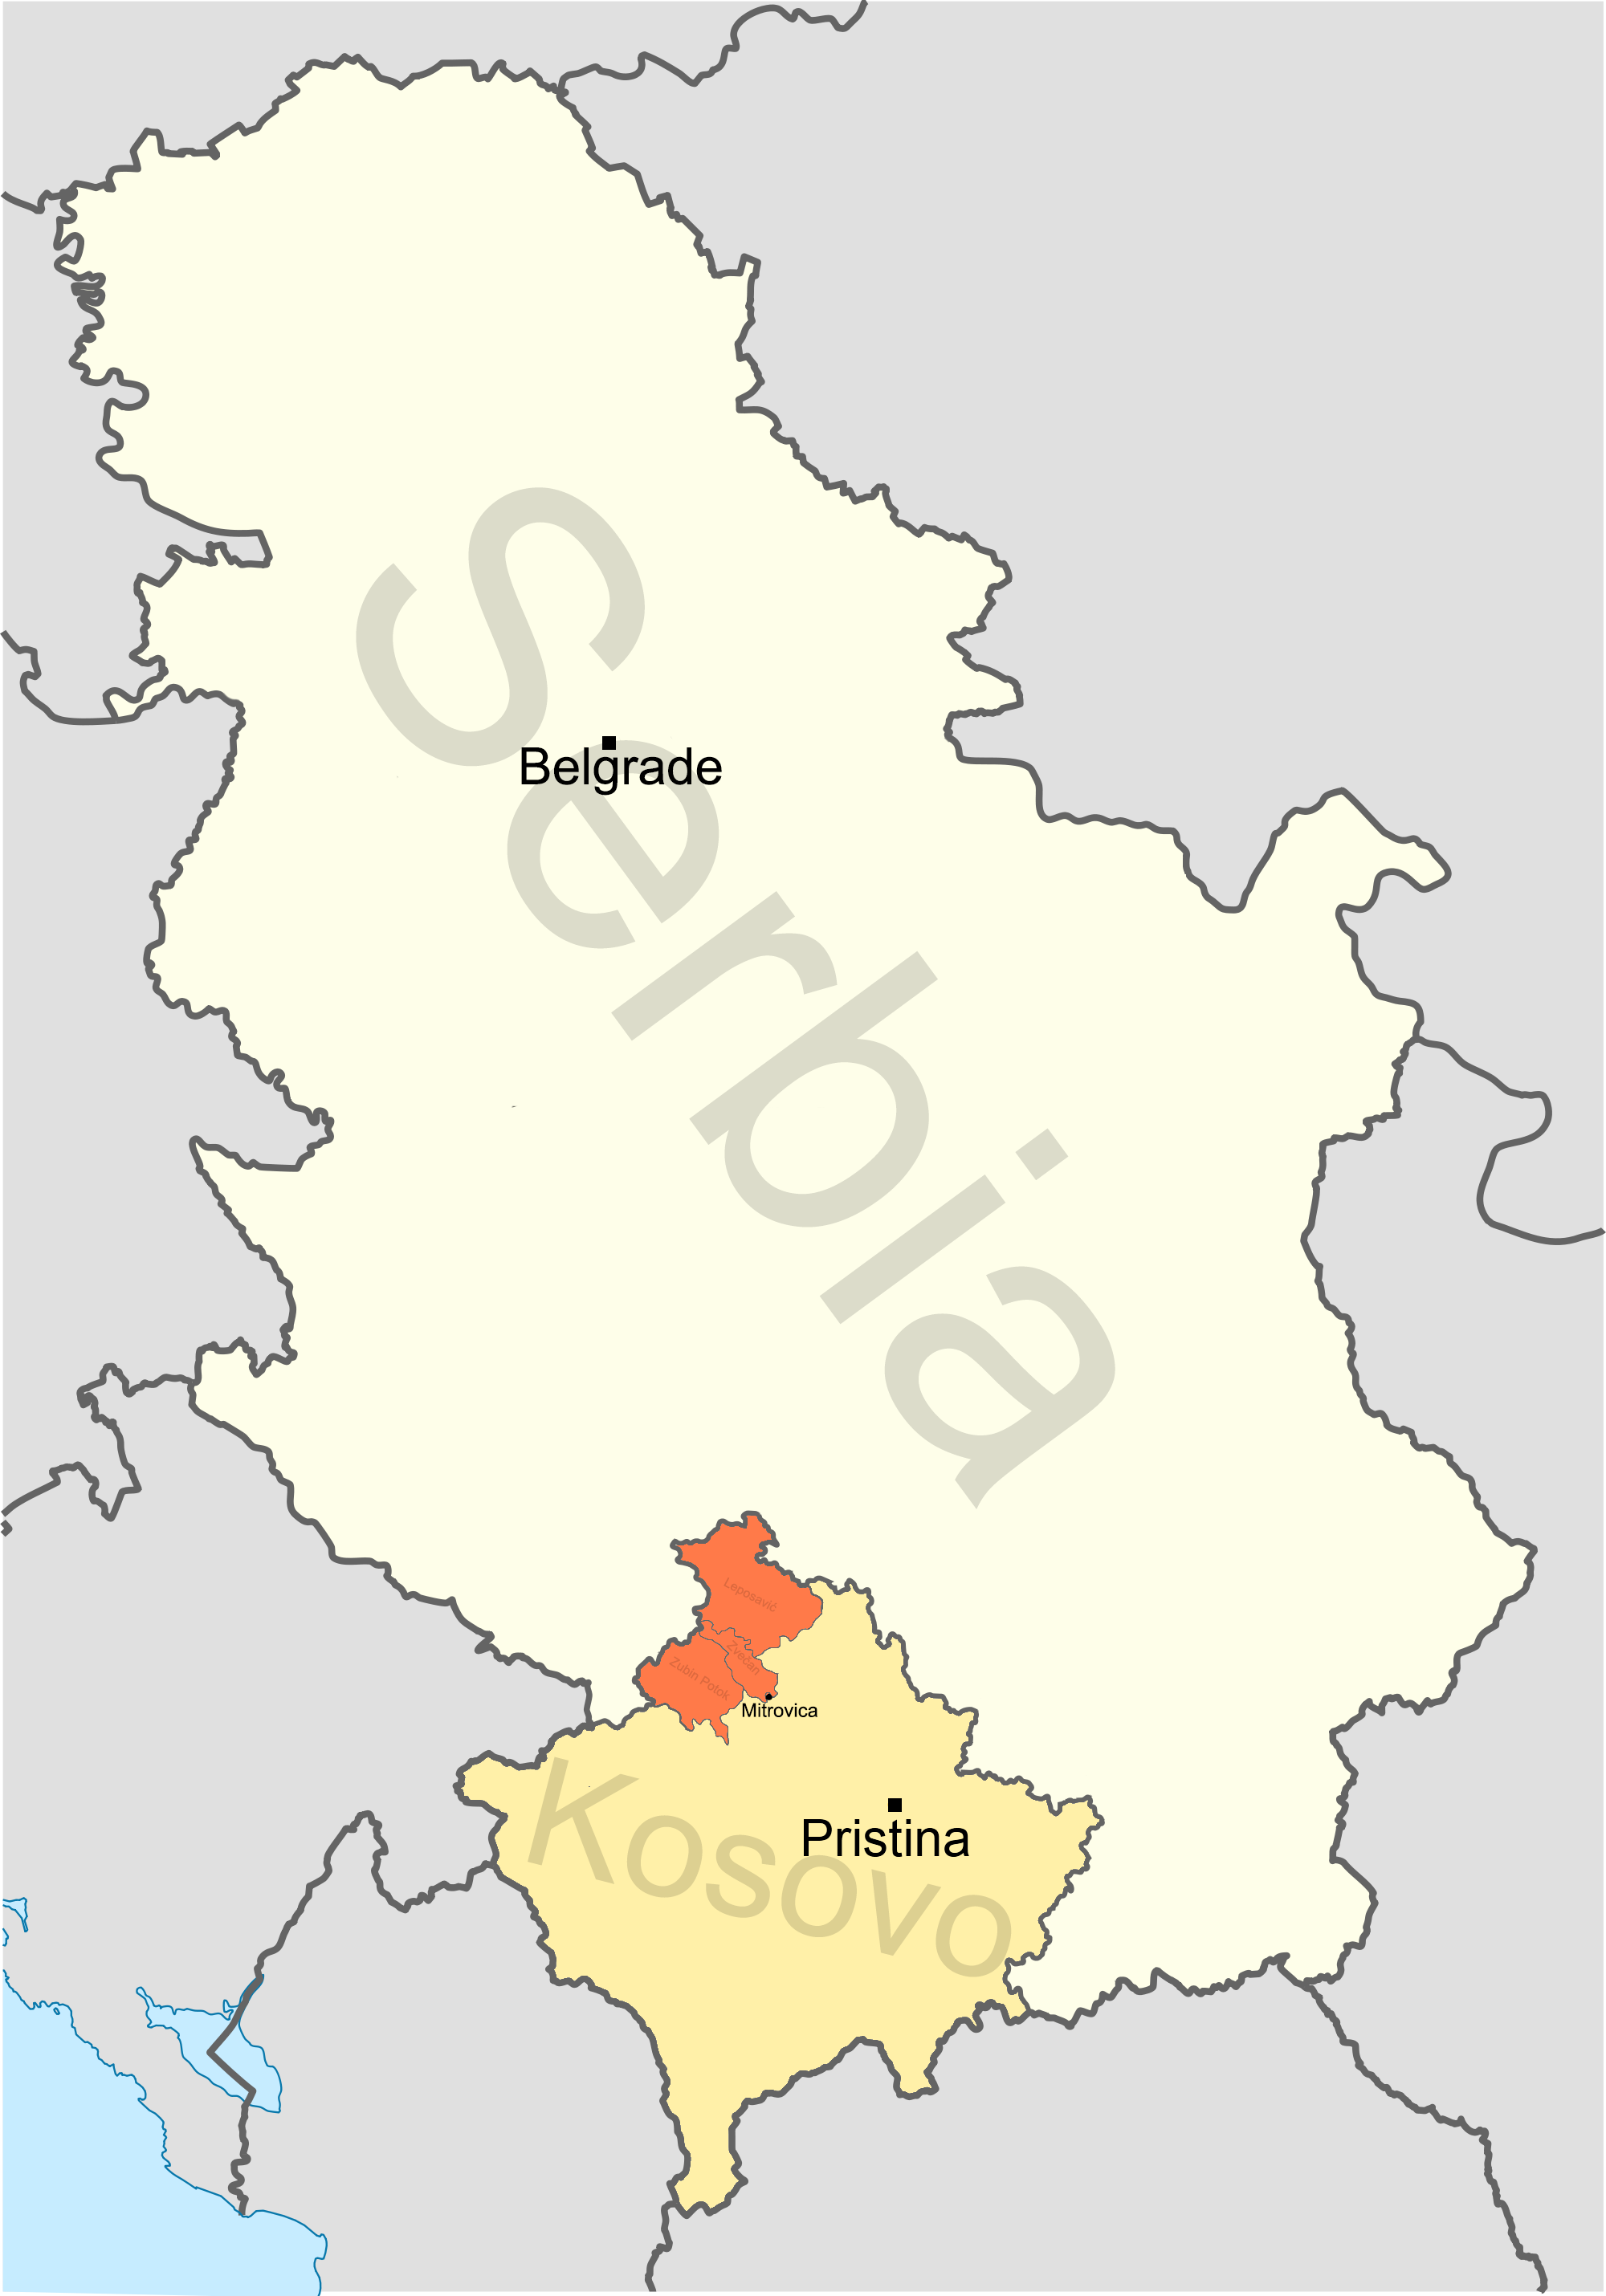 Parion of Kosovo - Wikipedia on sweden border map, czech republic border map, latvia border map, europe border map, france border map, afghanistan border map, vatican city border map, hungary border map, mexico border map, gaza border map, russia border map, kazakhstan border map, monaco border map, vietnam border map, sudan border map, venezuela border map, hong kong border map, bulgaria border map, bermuda border map, greece border map,